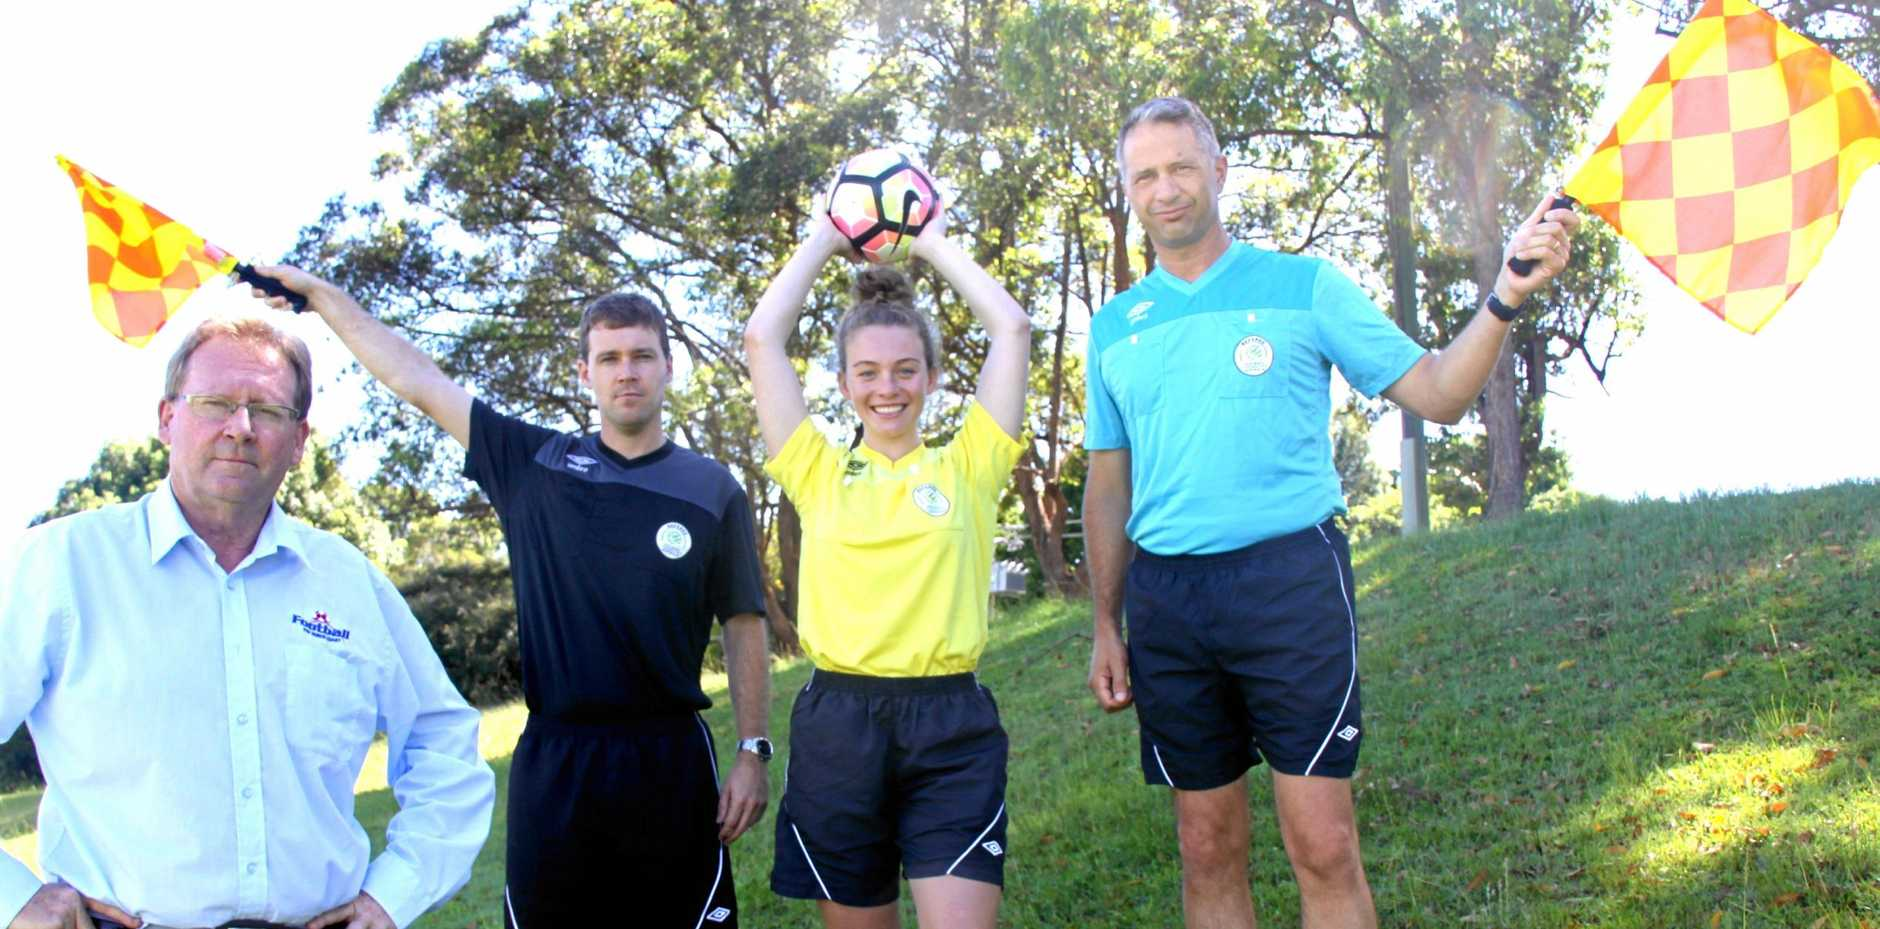 REF RECRUITMENT: Football Far North Coast has commenced a recruitment drive for senior referees to be part of a game which has 7000 players across the region. L-R FFNC general manager Steve Mackney with referees Luke Mackney, Maddie Smith and Anthony Smith.